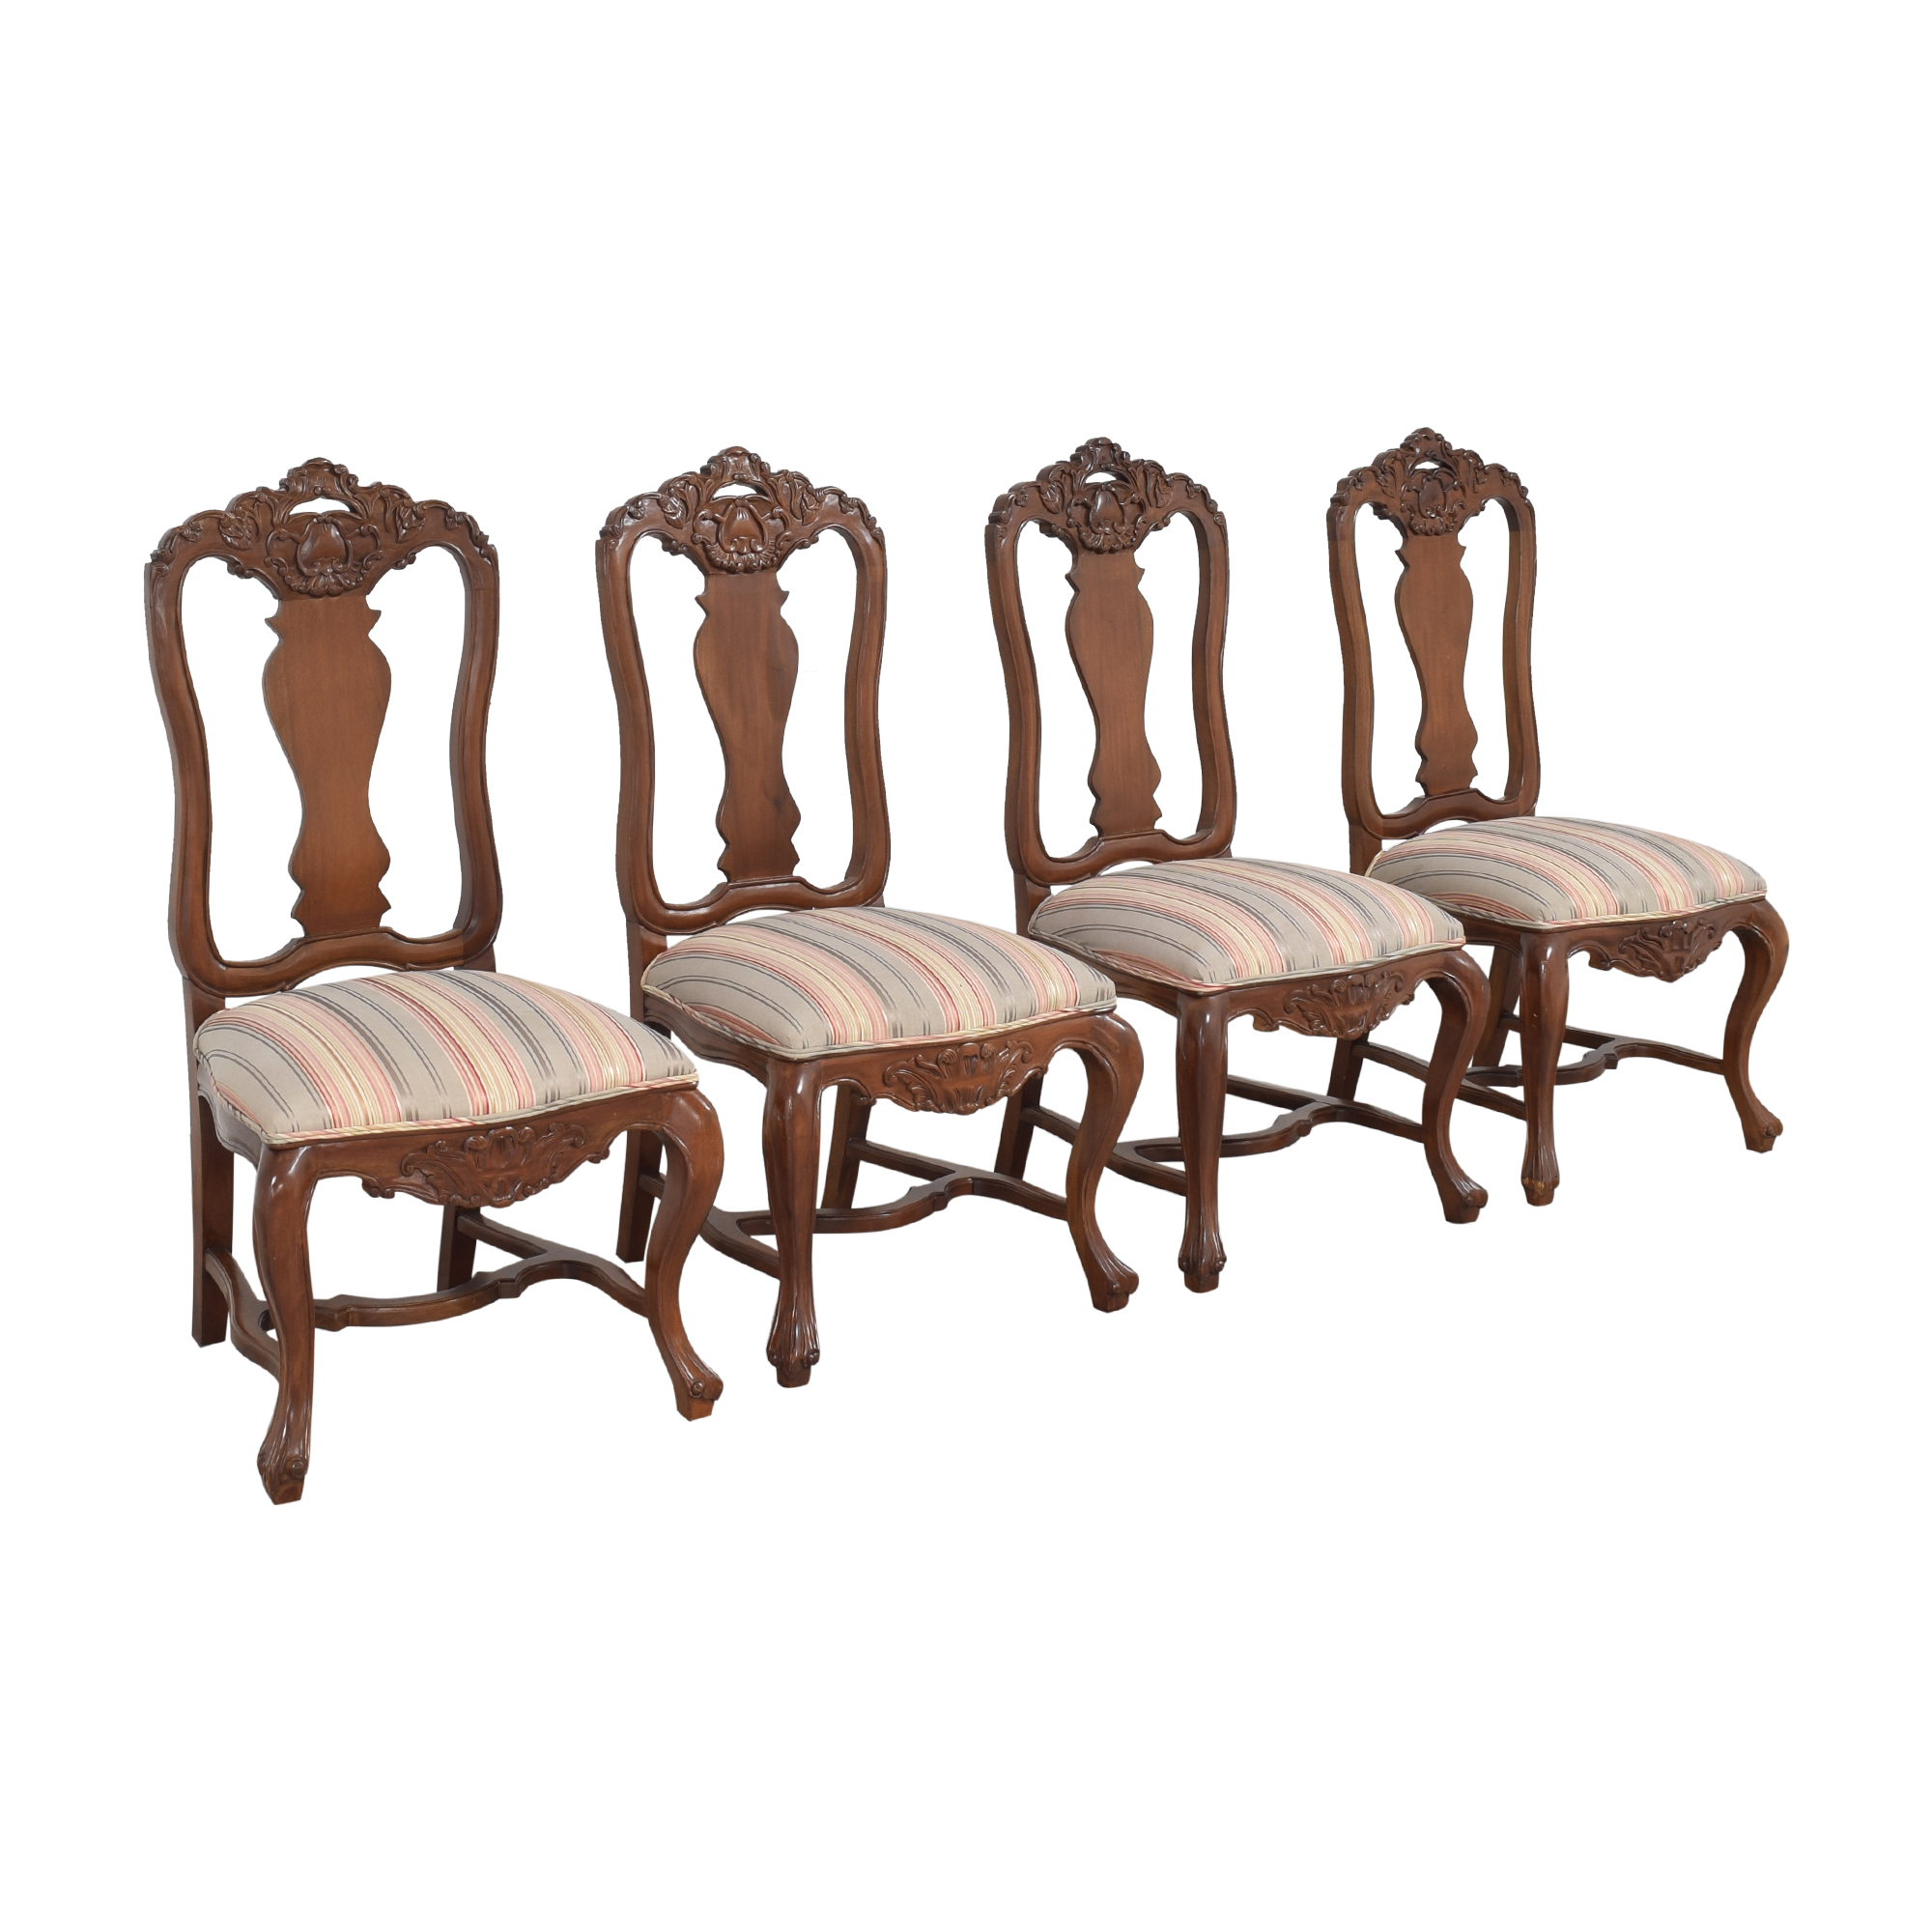 buy Andre Originals Andre Originals Dining Side Chairs online